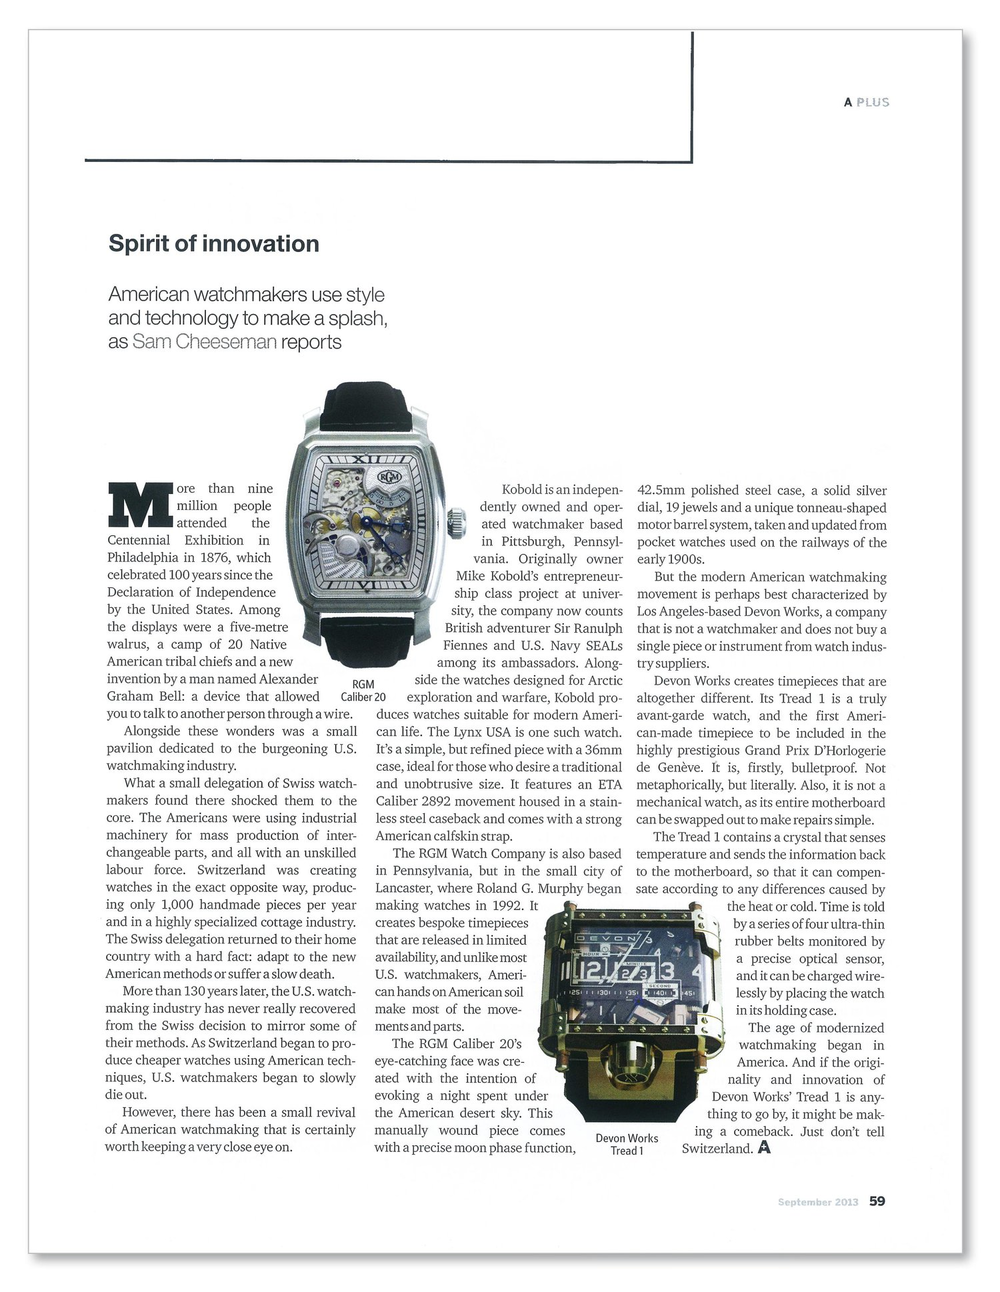 A Plus Magazine - Timepieces